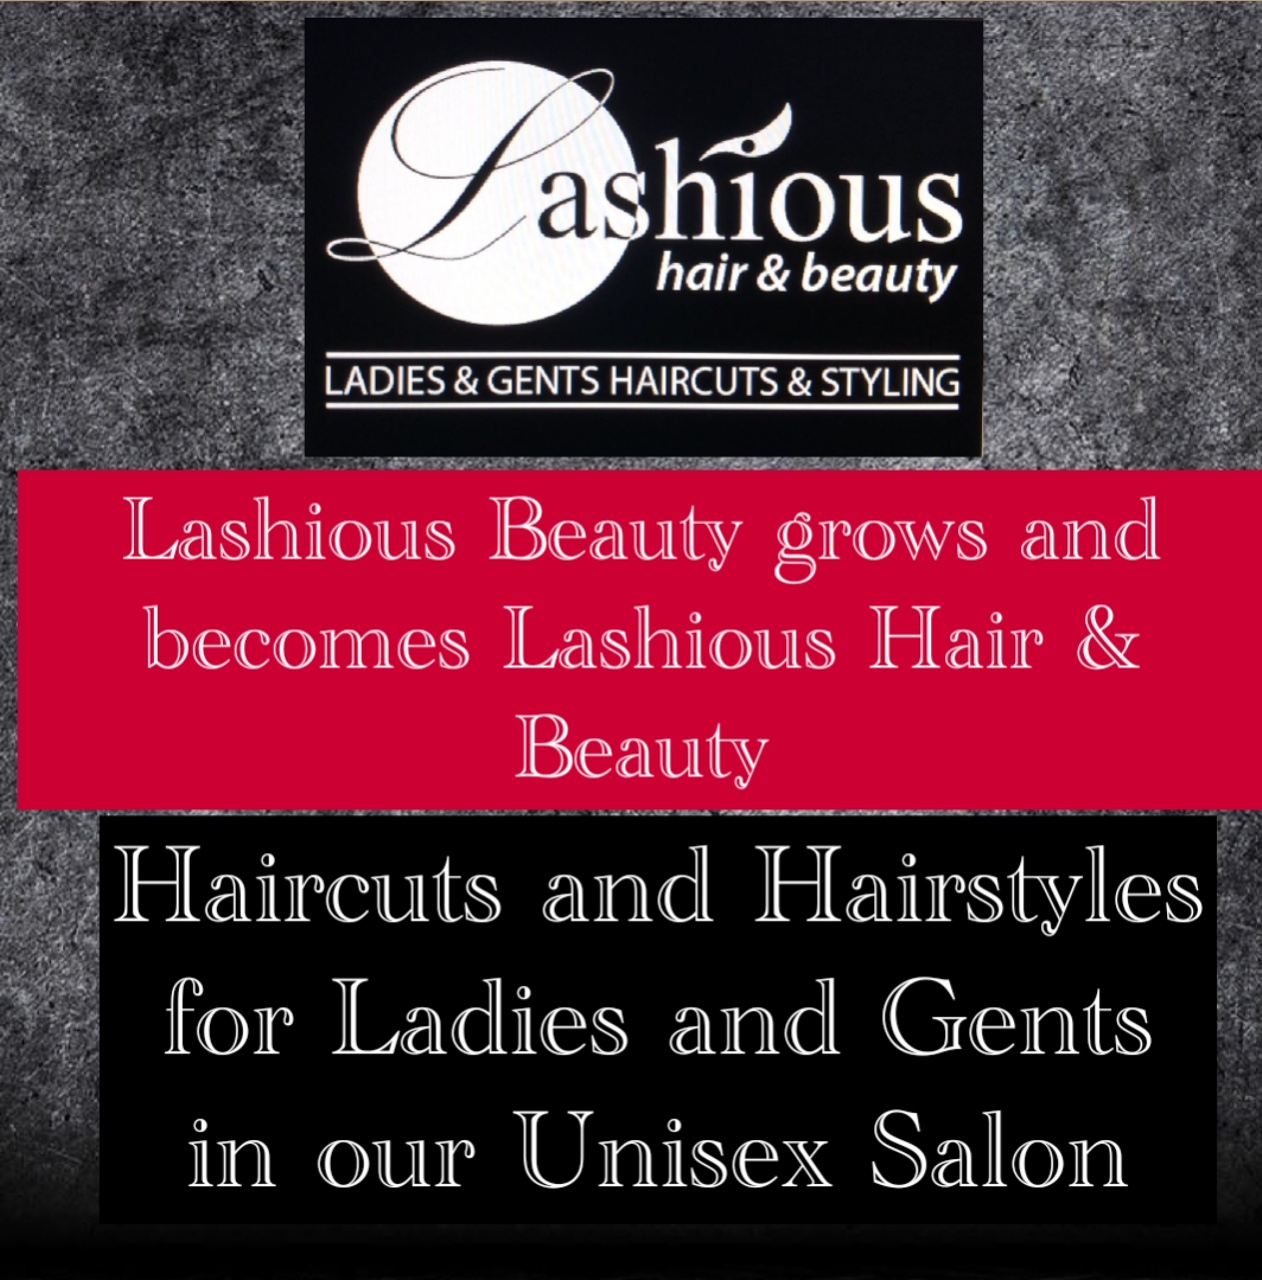 Lashious hair & beauty